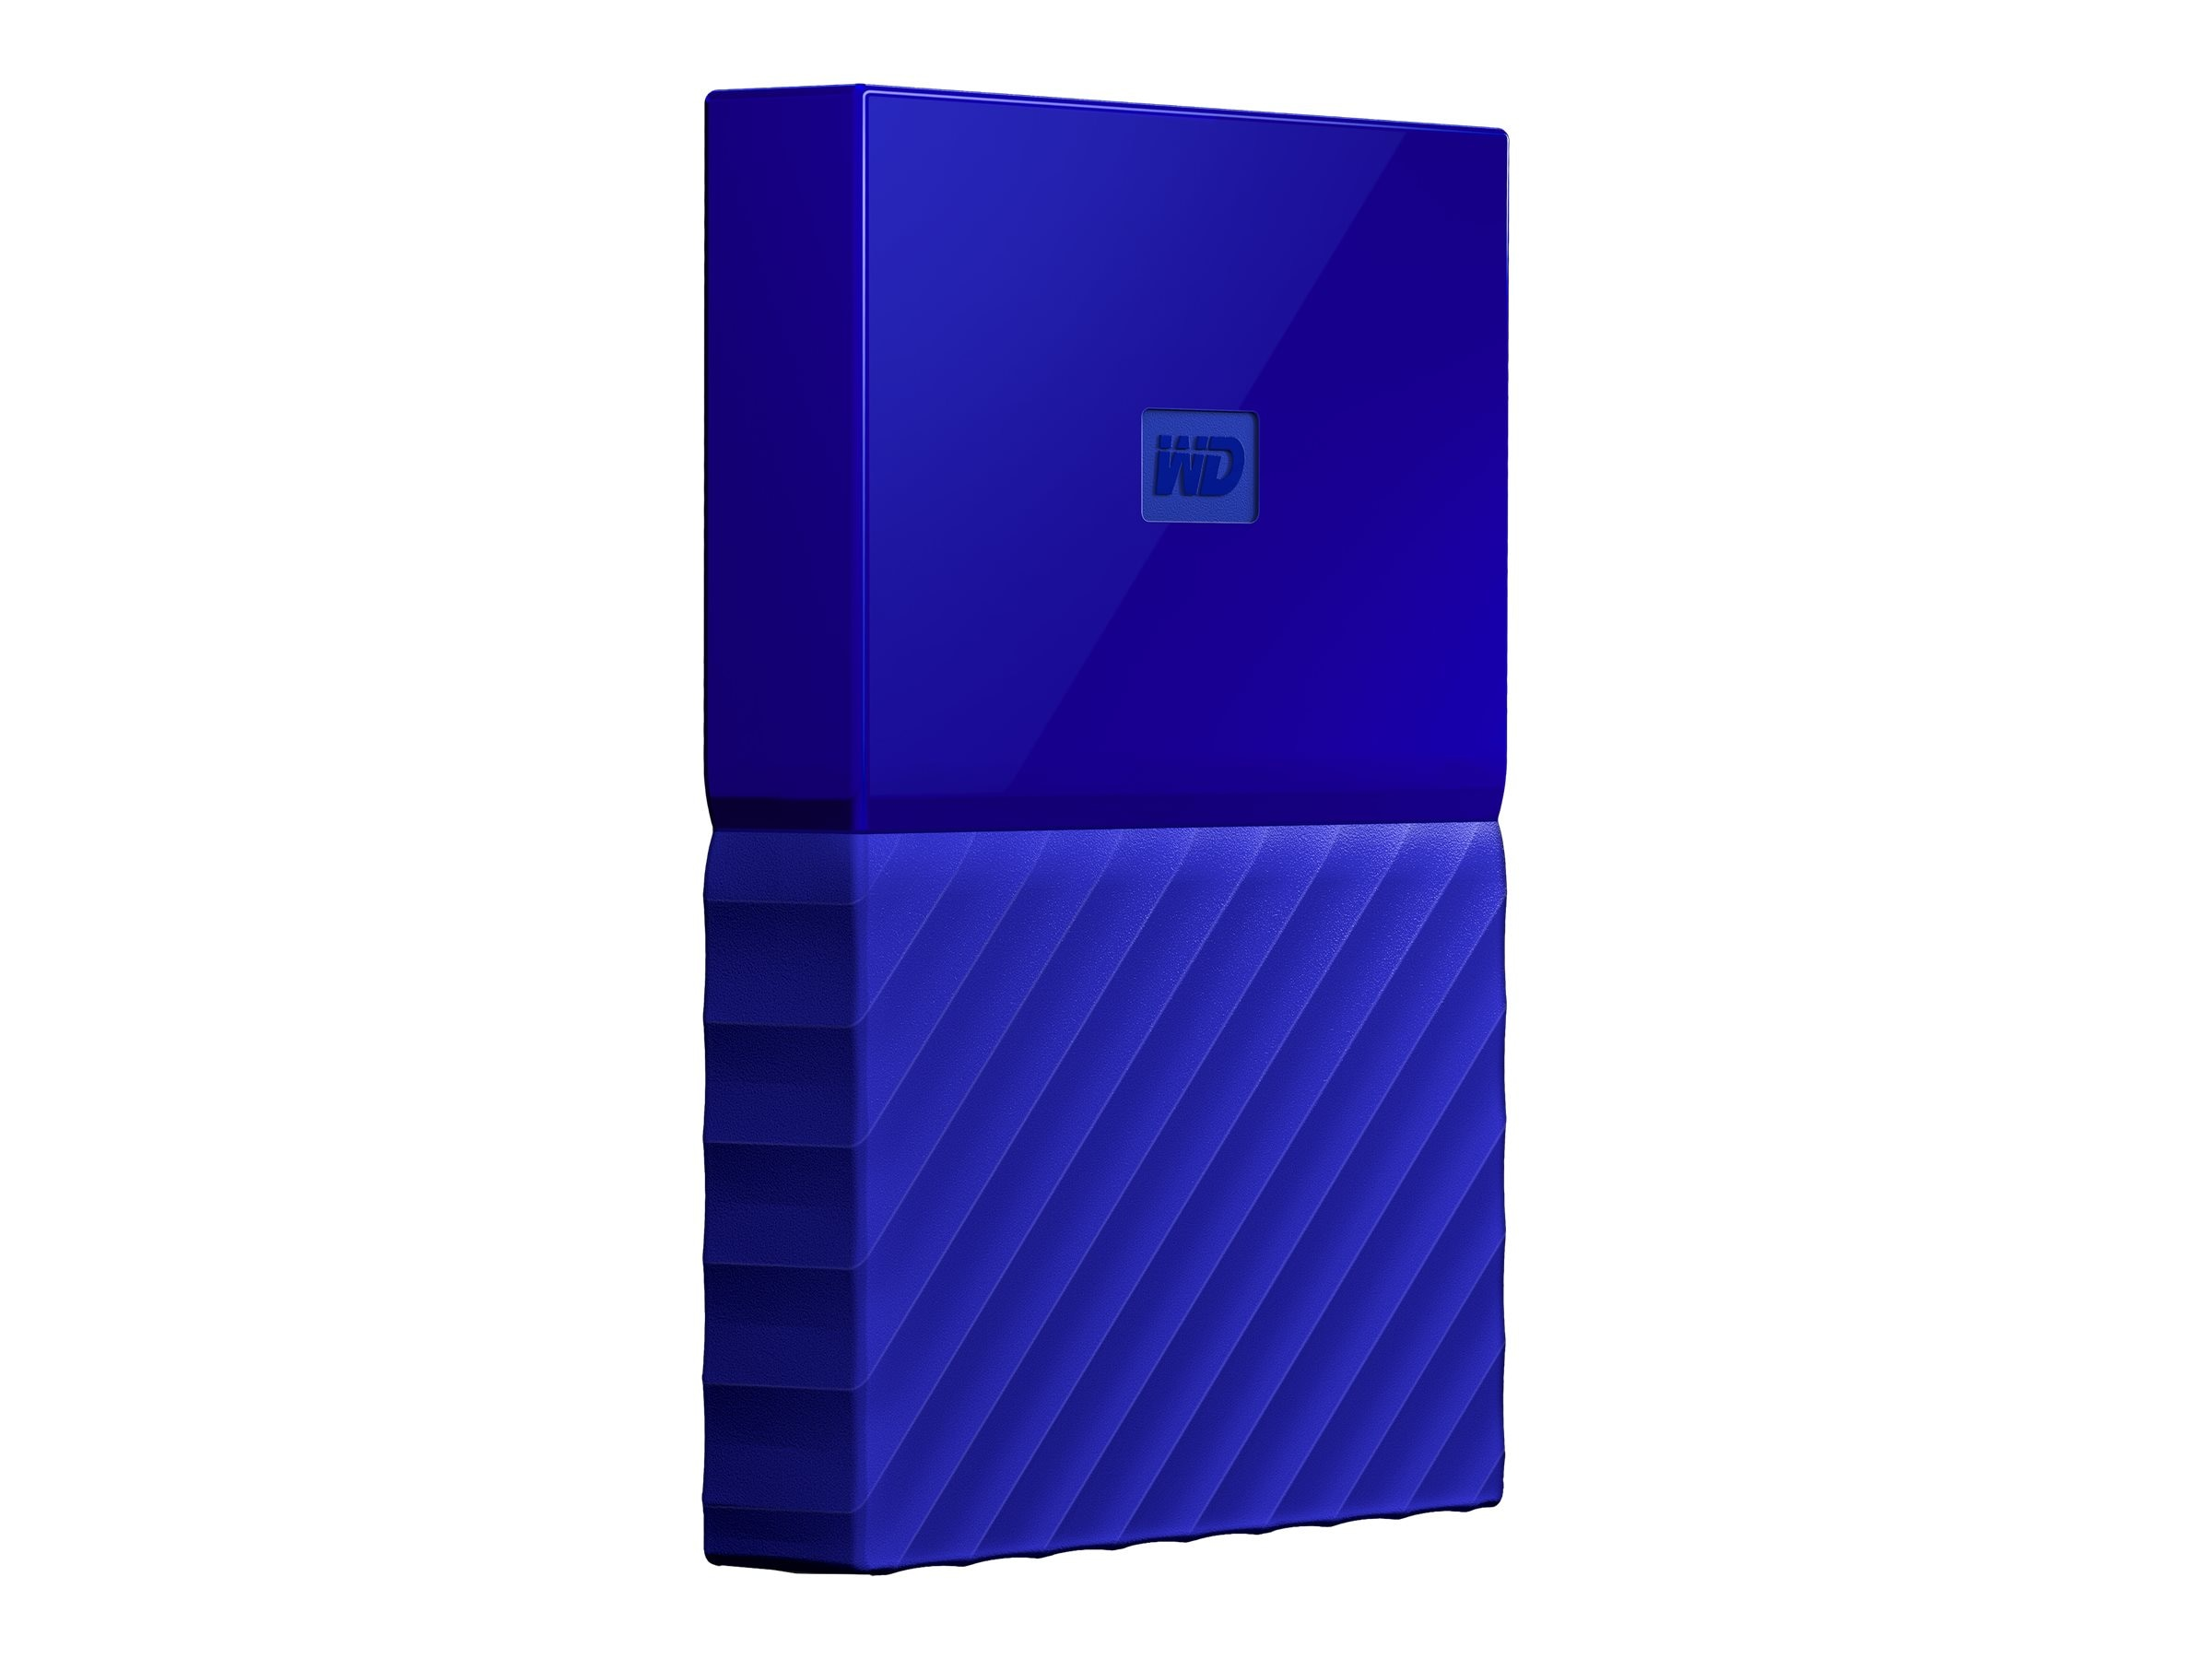 WD 2TB My Passport USB 3.0 Portable Hard Drive - Blue, WDBYFT0020BBL-WESN